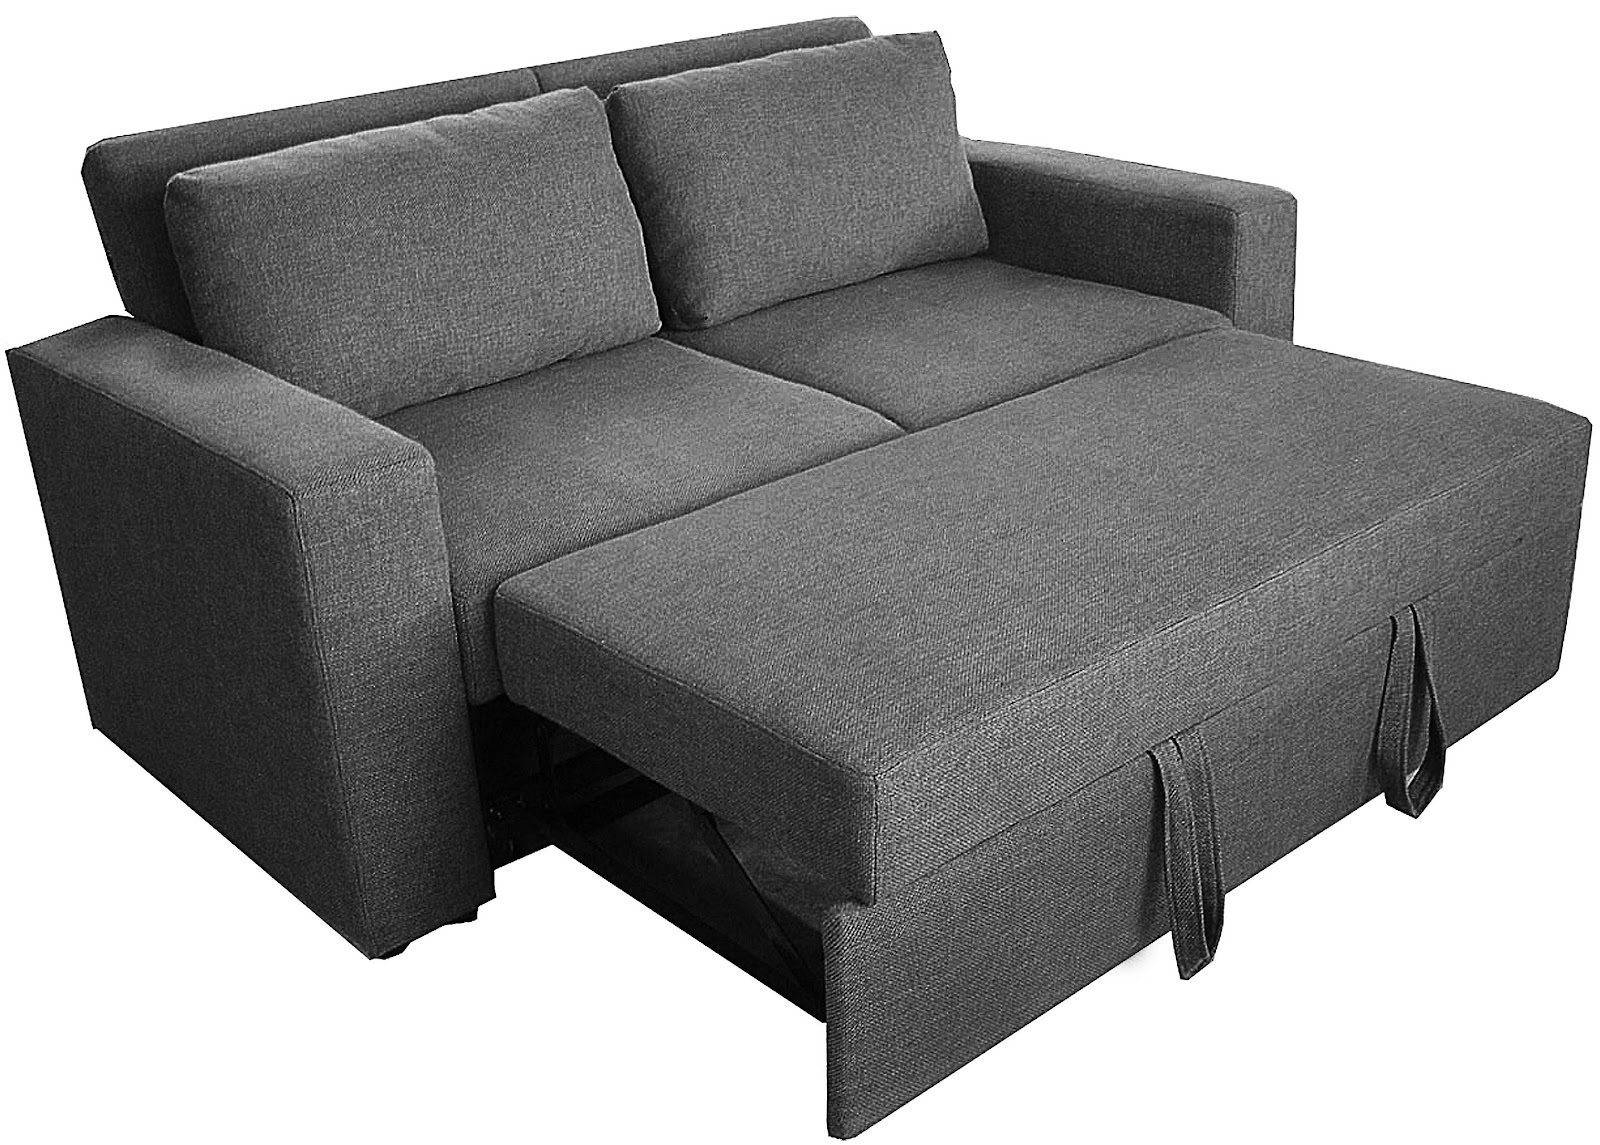 Furniture & Rug: Extraordinary Moheda Sofa Bed For Home Furniture pertaining to Ikea Loveseat Sleeper Sofas (Image 7 of 30)